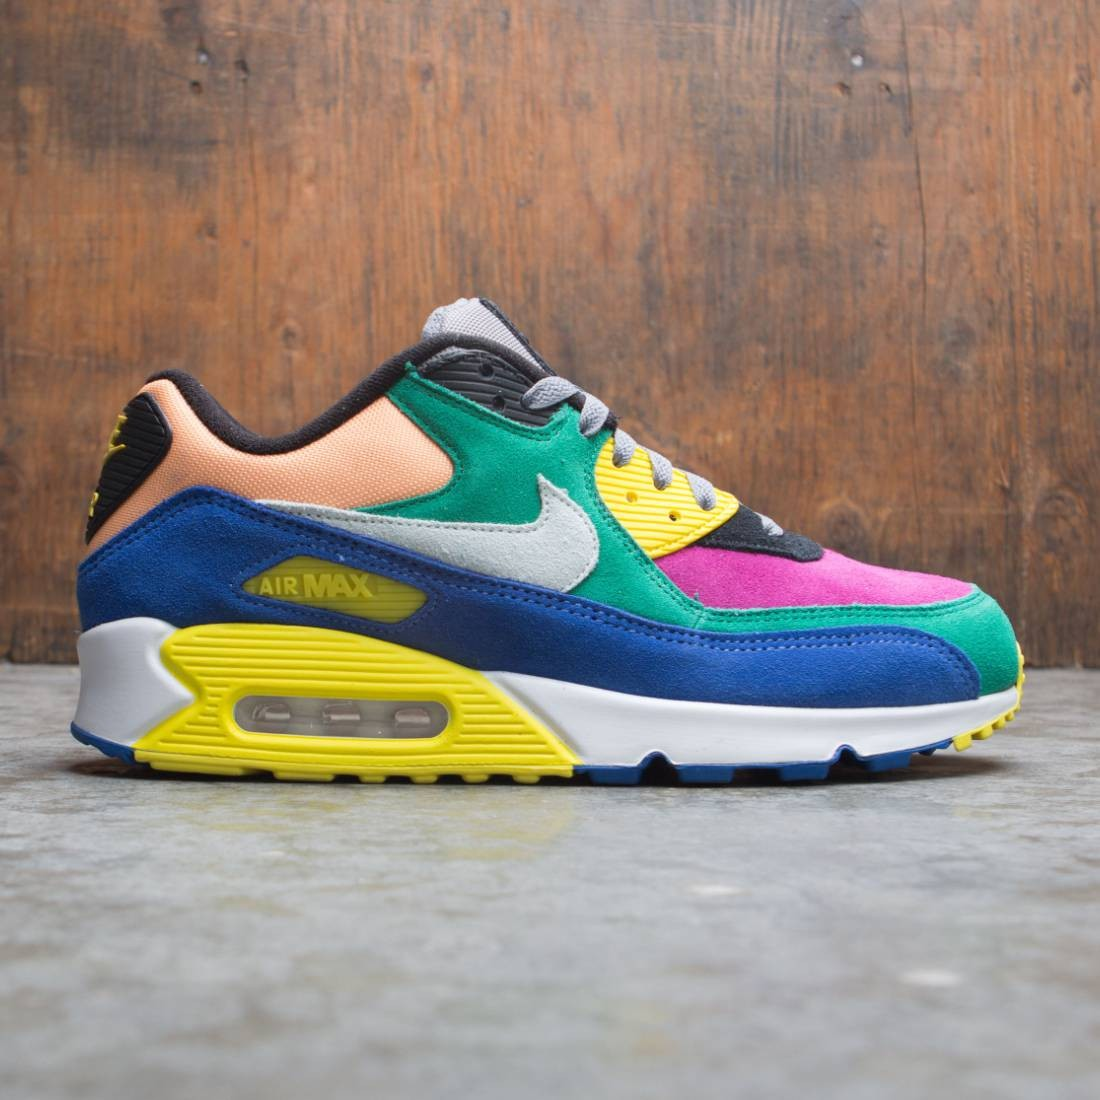 Nike Air Max 90 QS lucid green barely grey